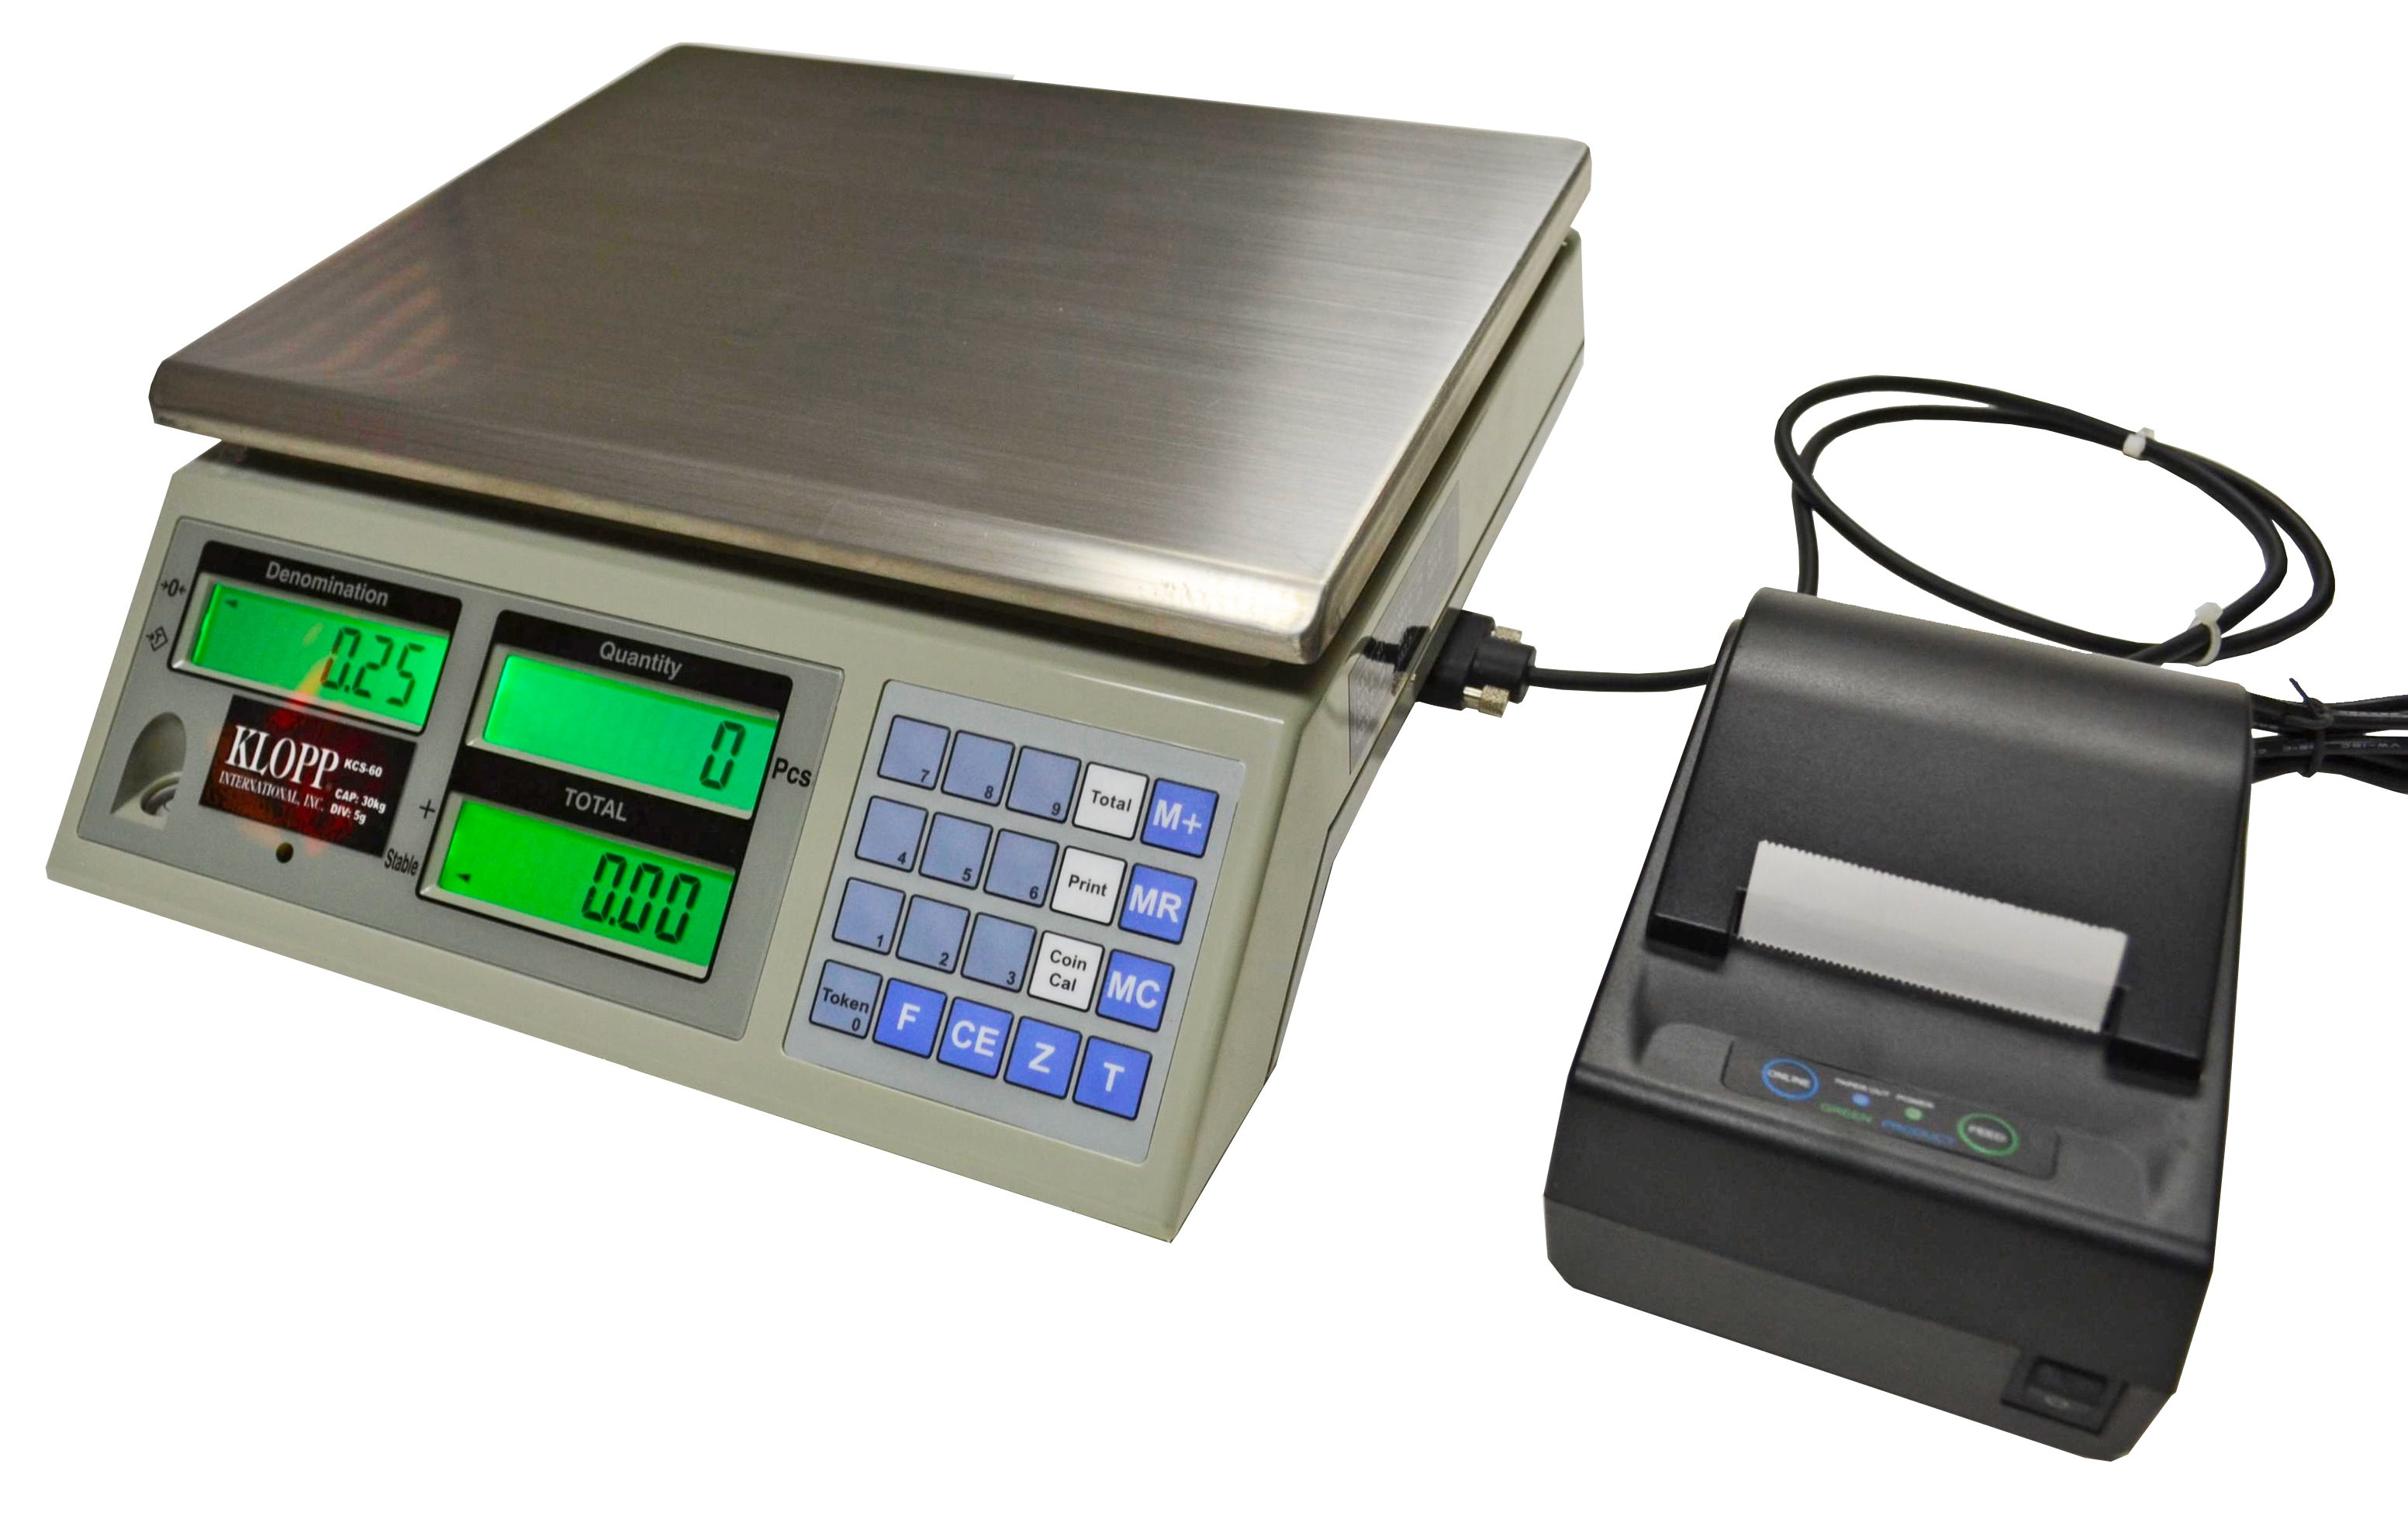 KCS Series Coin Scales